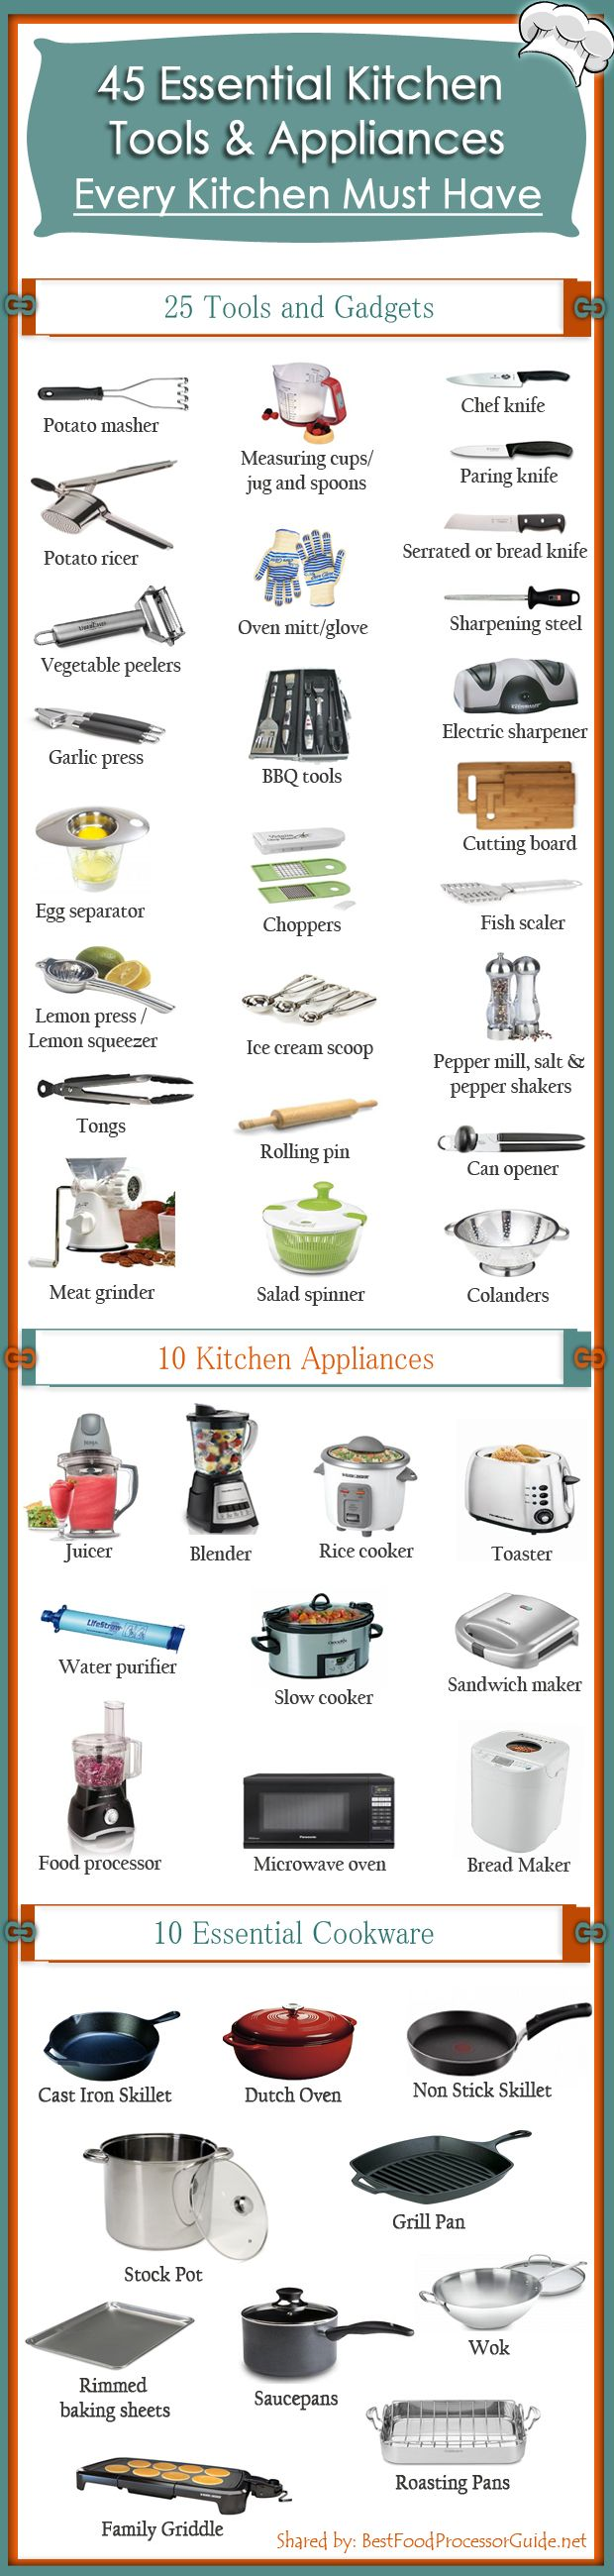 45 Essential Kitchen Tools And Appliances Every Kitchen Must